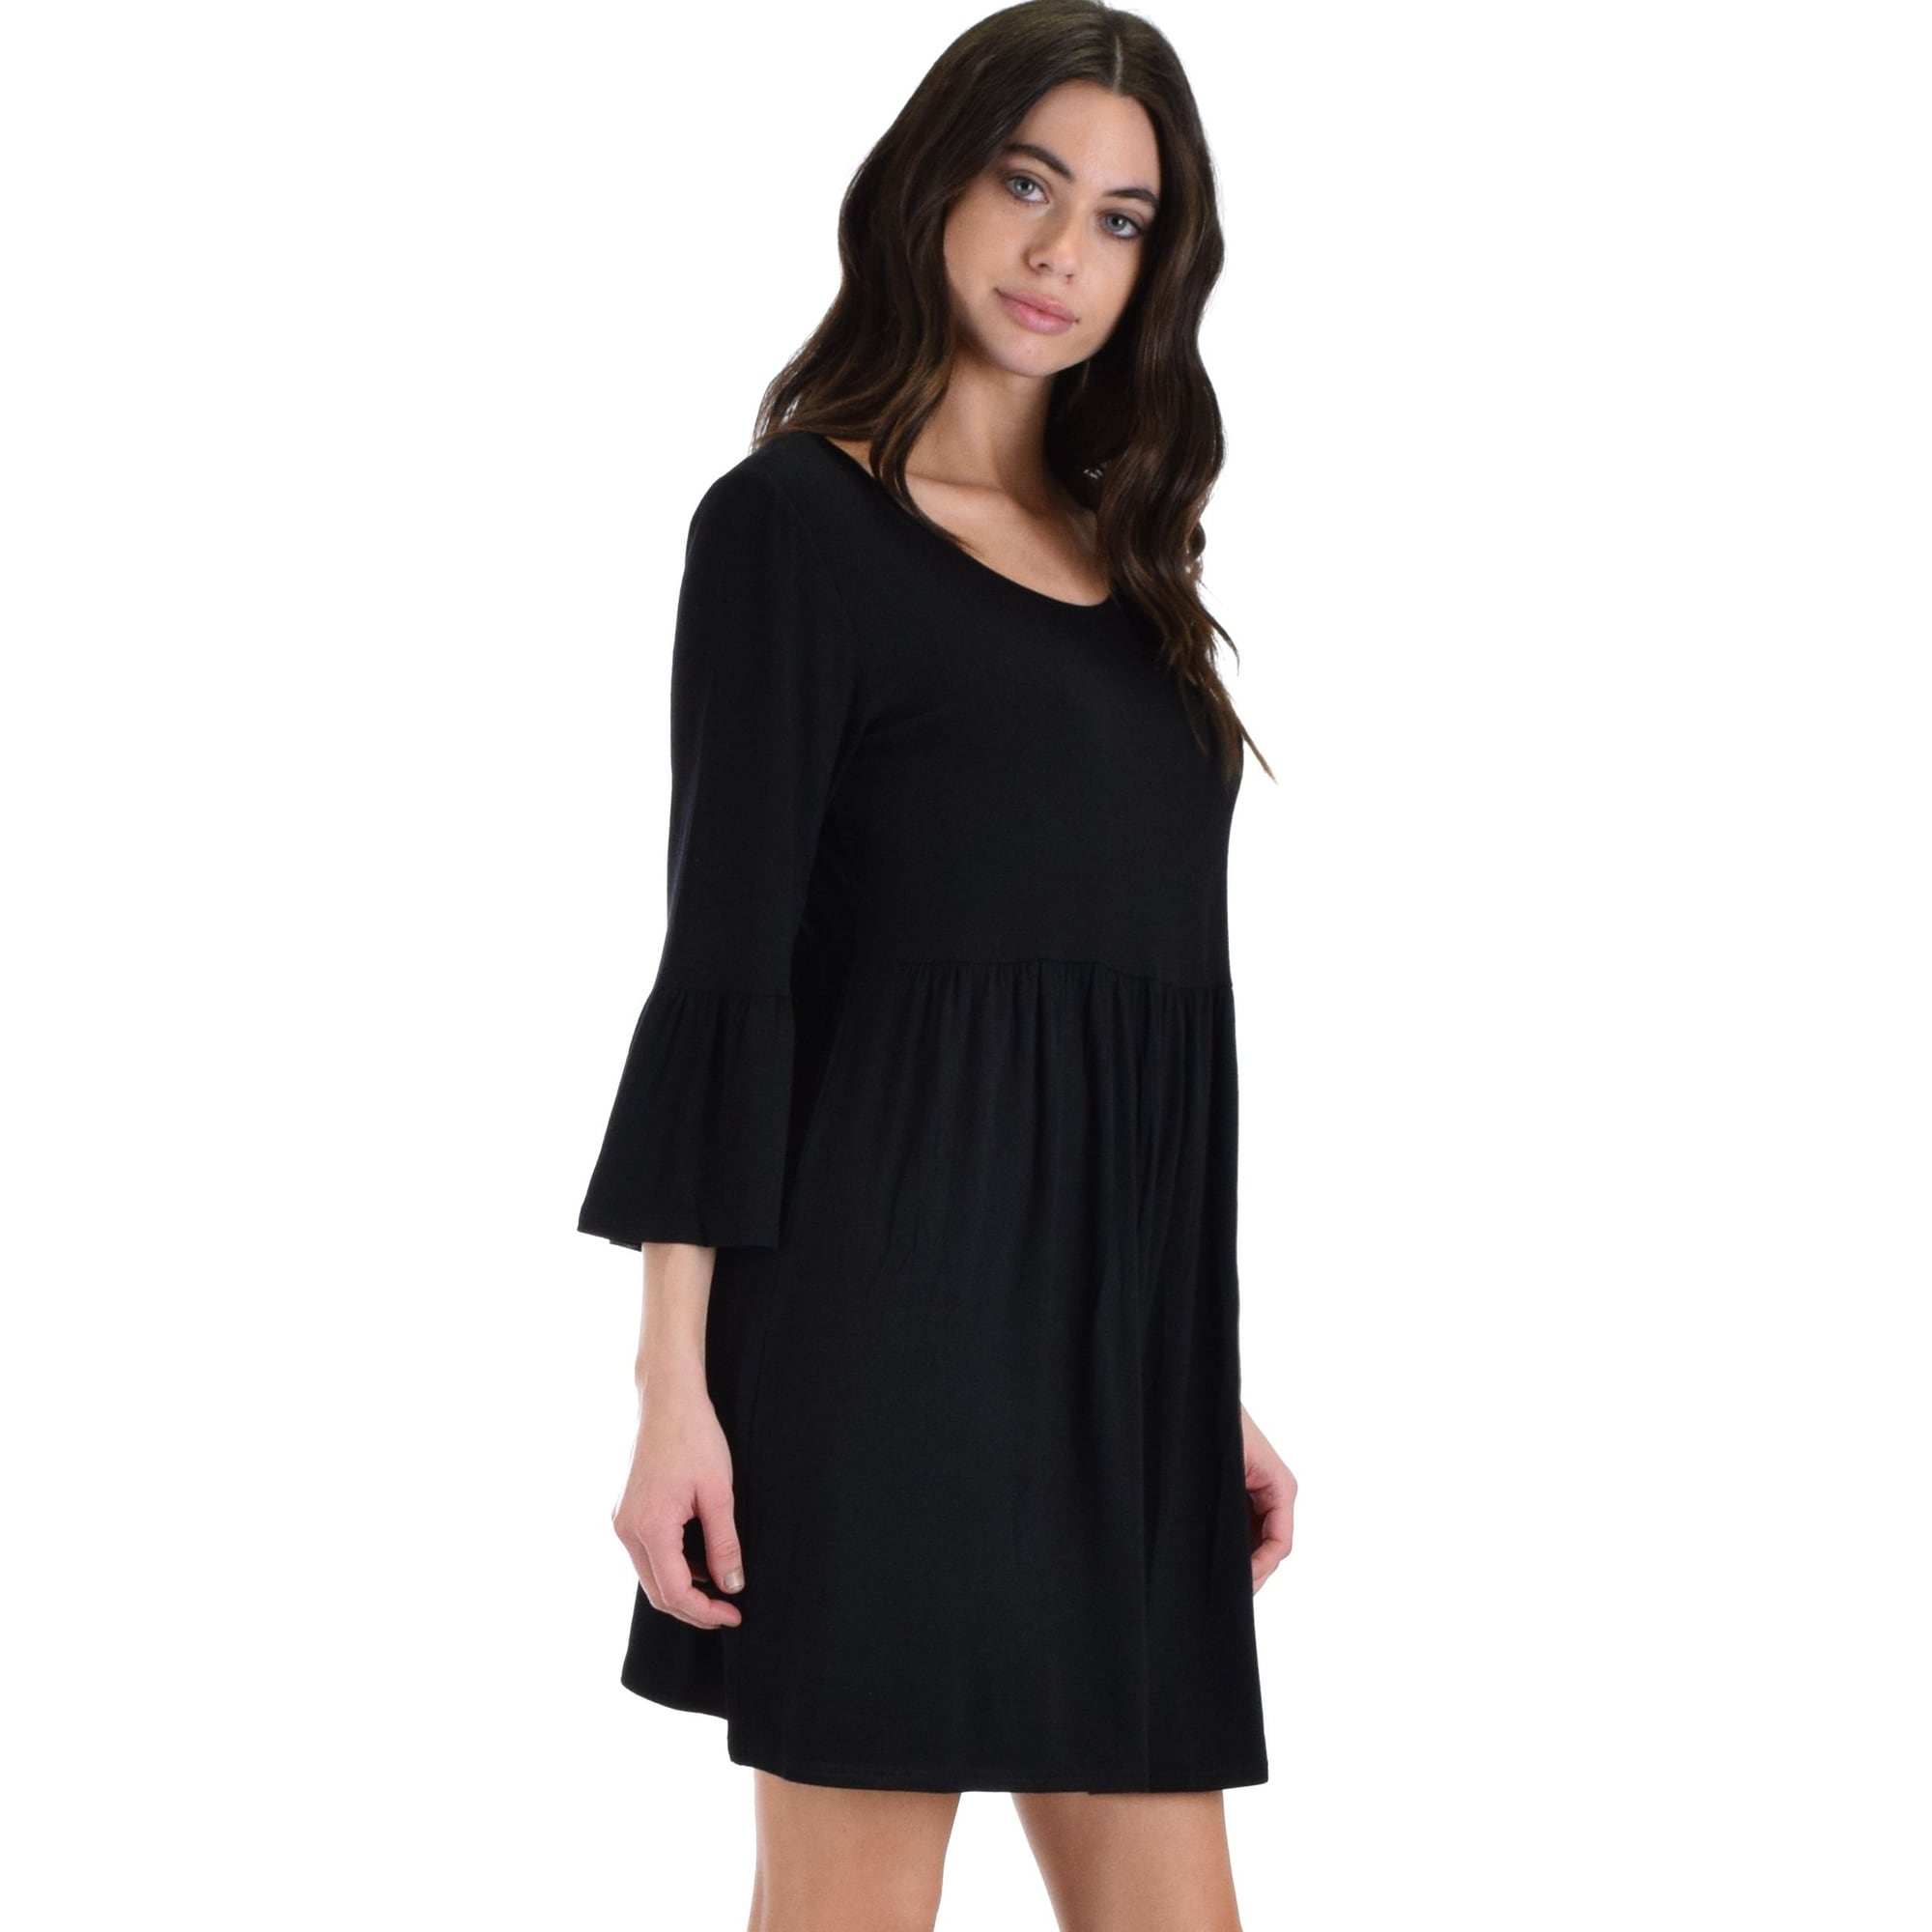 0d8587bc9b4 Shop black 3 4 sleeve dress with back keyhole sl3867 -Black-Small - Free  Shipping On Orders Over  45 - Overstock - 23109695